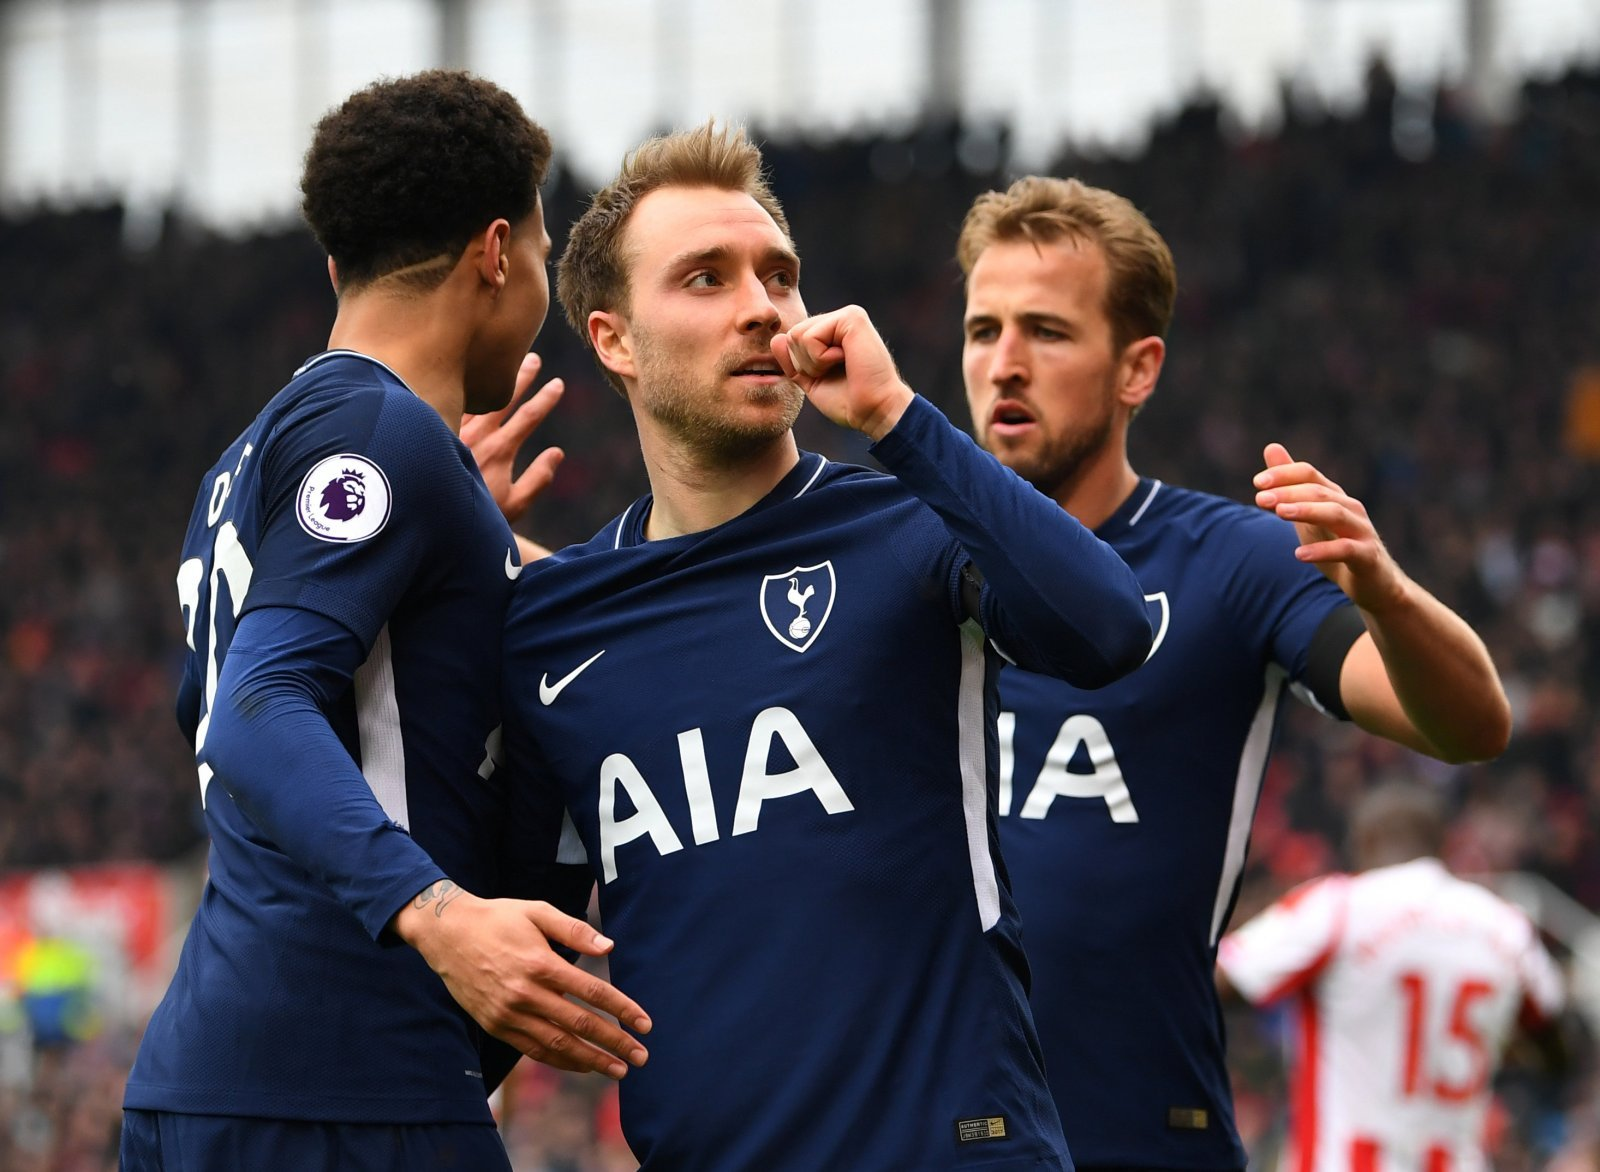 Tottenham should sell Eriksen ASAP if he wants to go